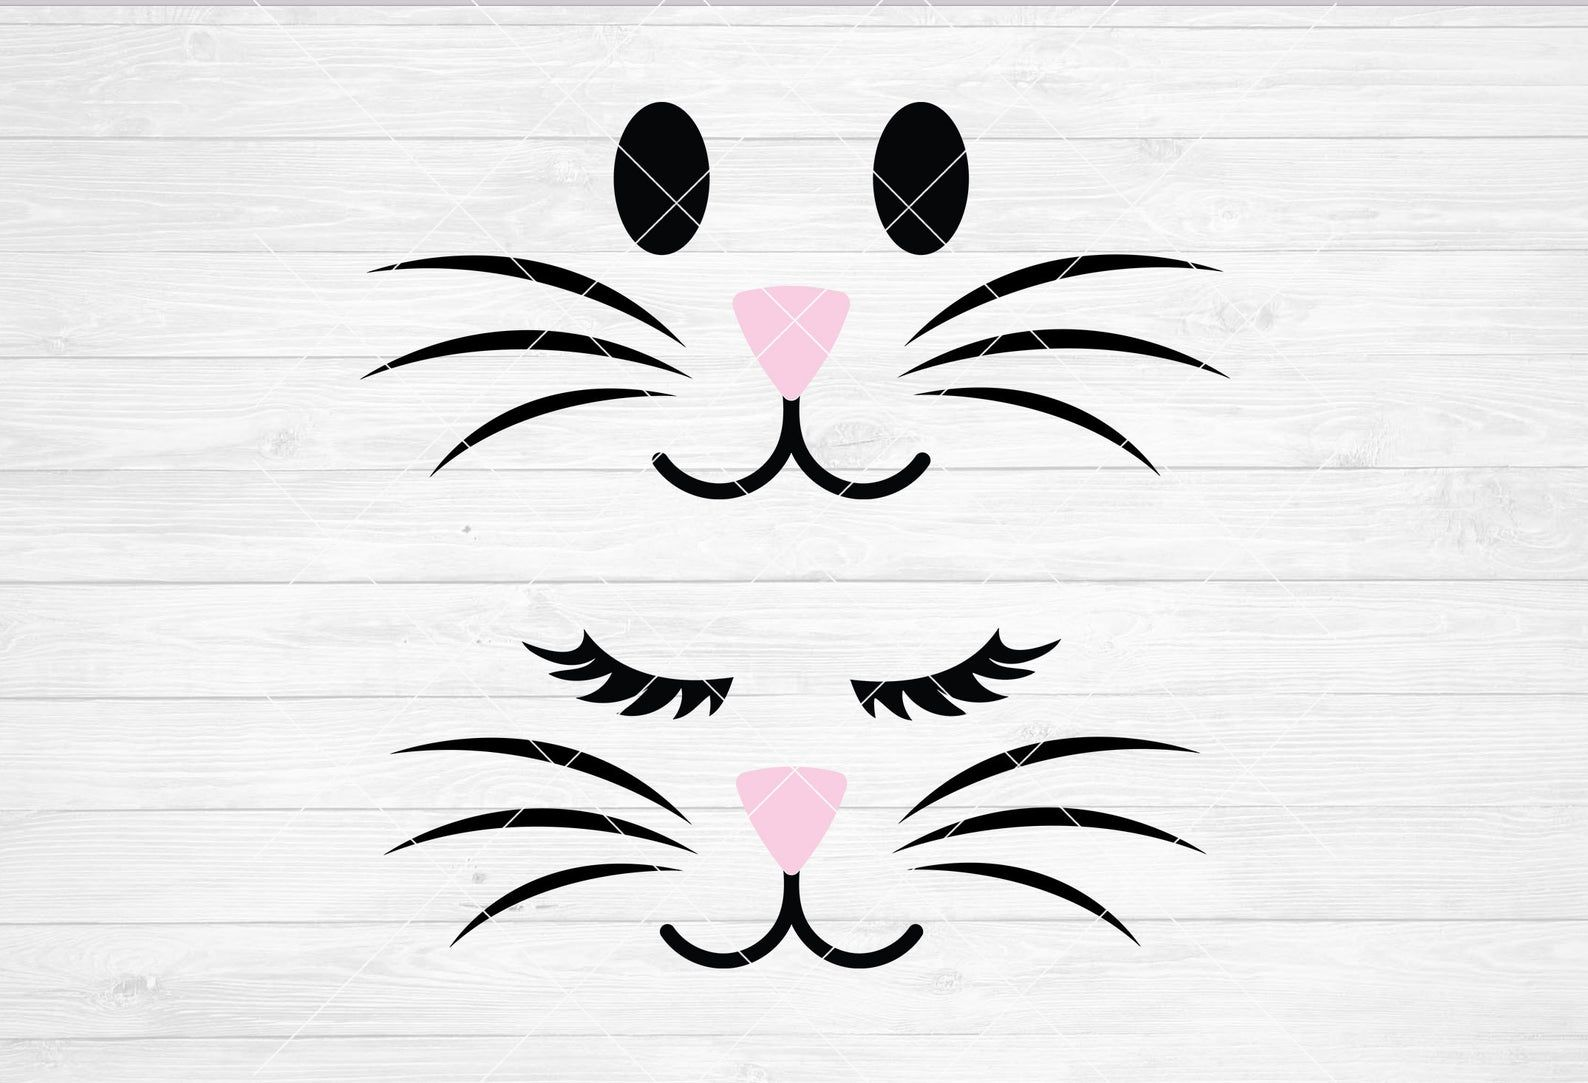 Instant Svg Dxf Png Male And Female Bunny Face Easter Bunny Svg Easter Svg Silhouette Cricut Bunny Svg Easter Party Svg Png Bags Easter Bunny Pictures Easter Bunny Crafts Easter Drawings